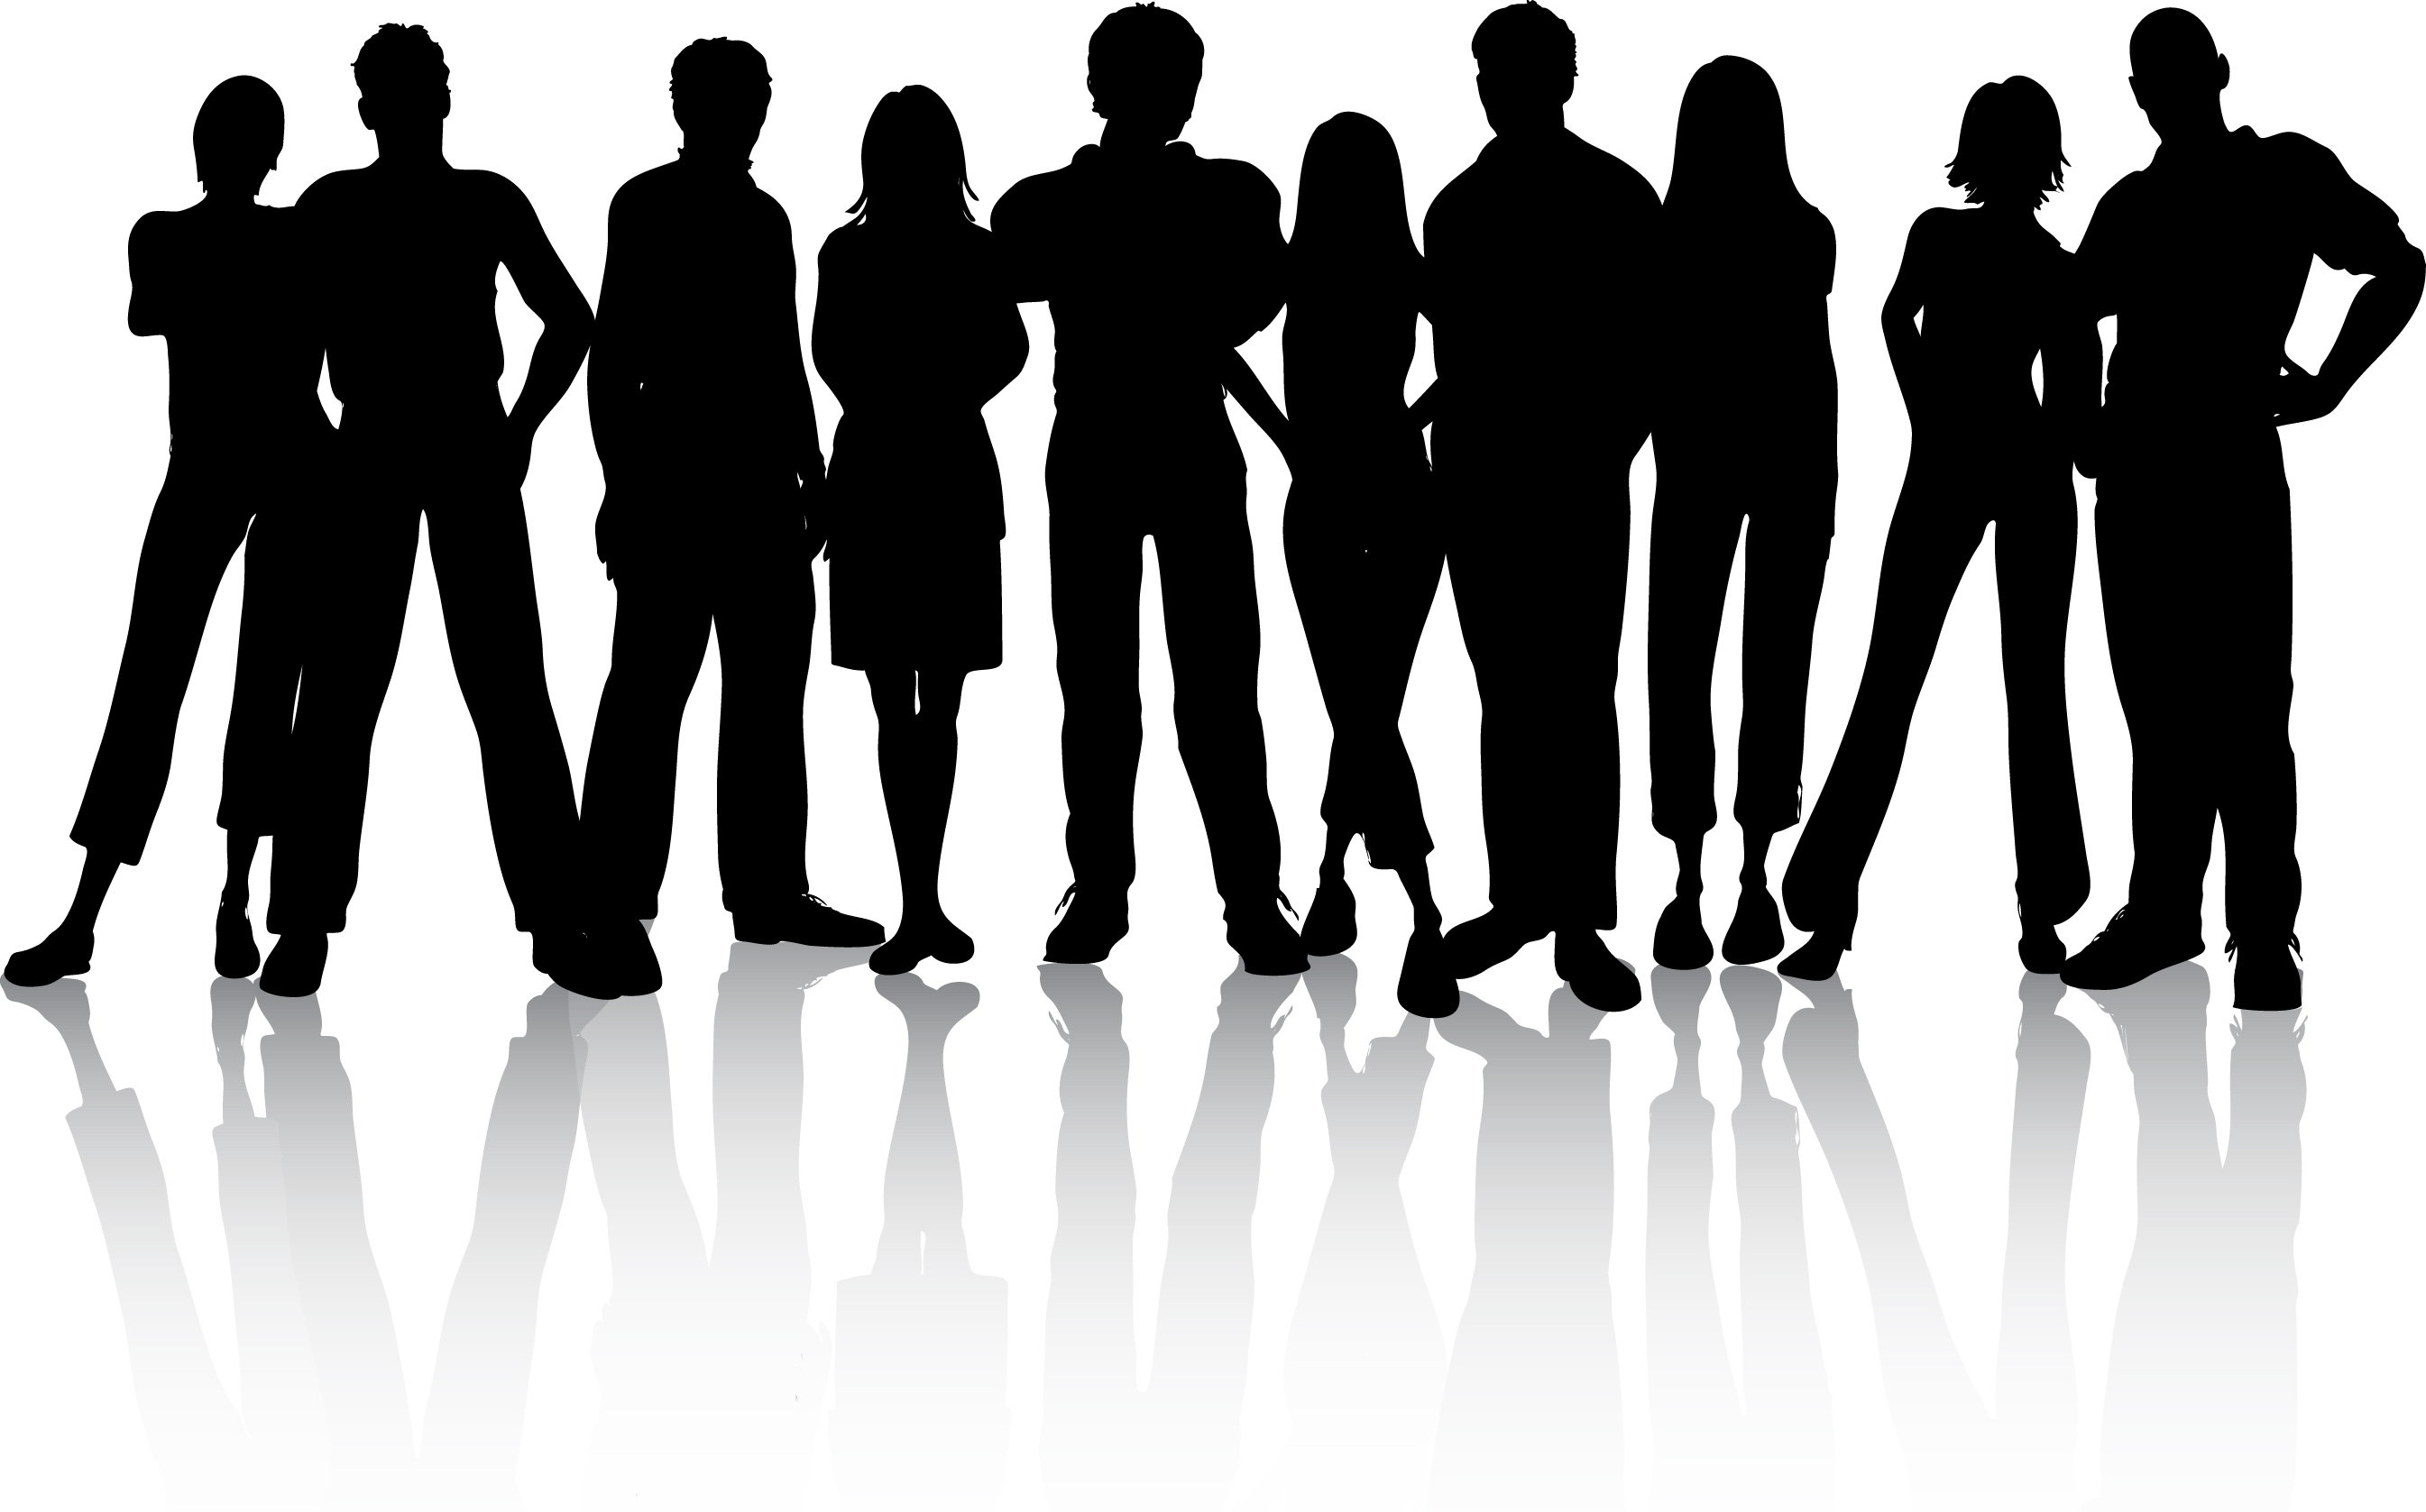 Clipart images of people jpg black and white download People clip art images free clipart - ClipartBarn jpg black and white download